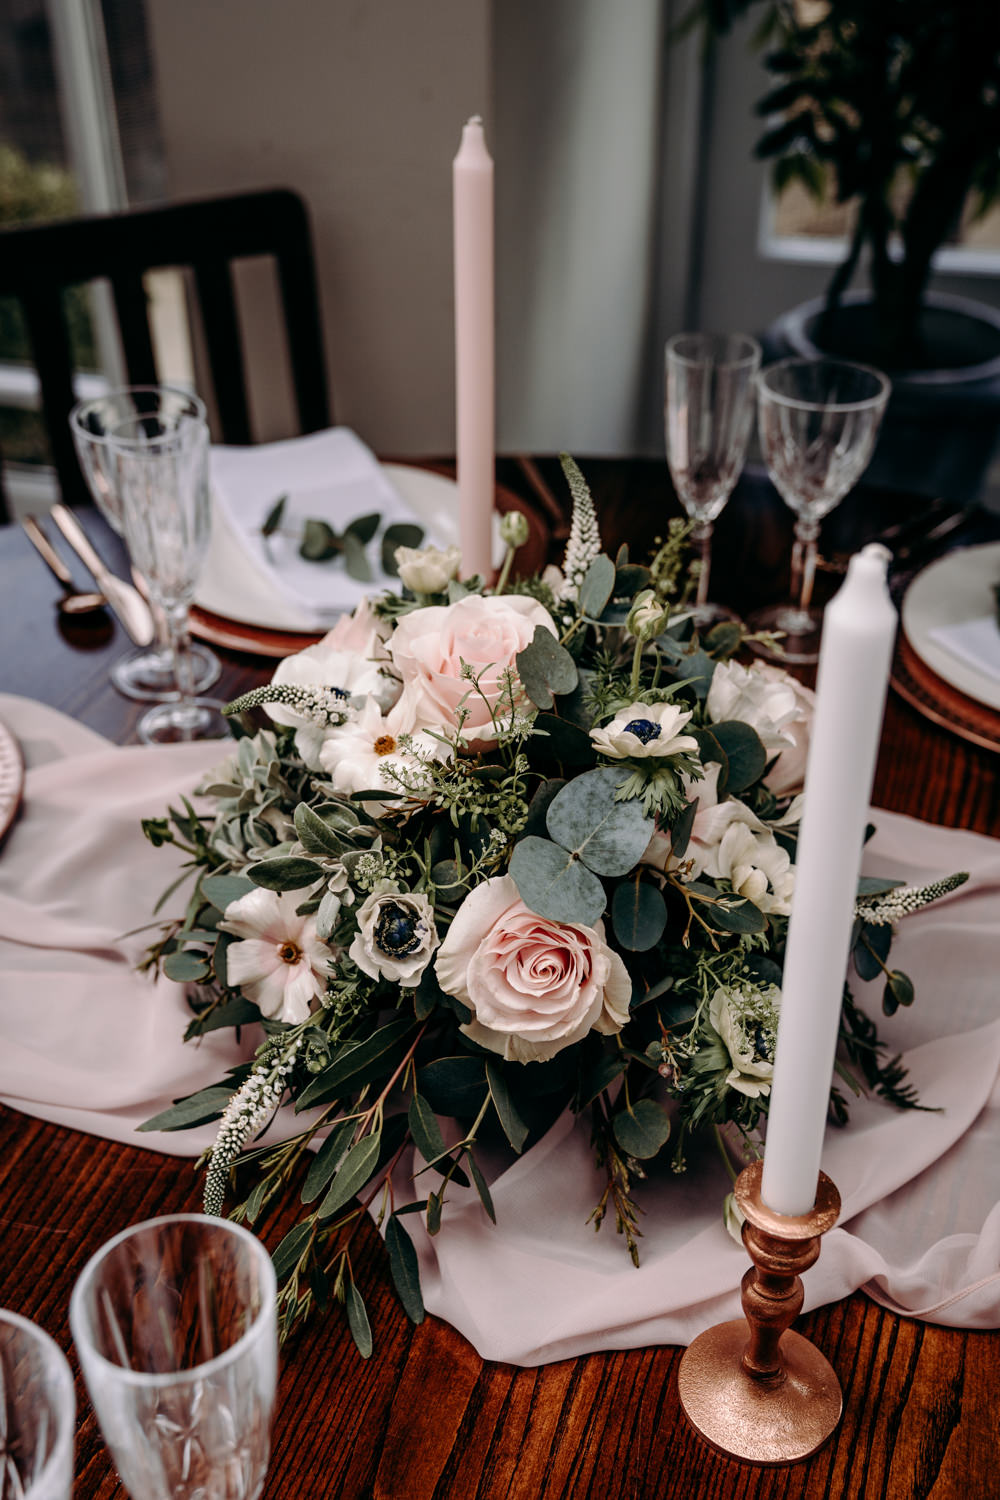 Wooden Rustic Table Tablescape Copper Pink Candles Flowers Runner Free Spirited Wedding Ideas EKR Pictures